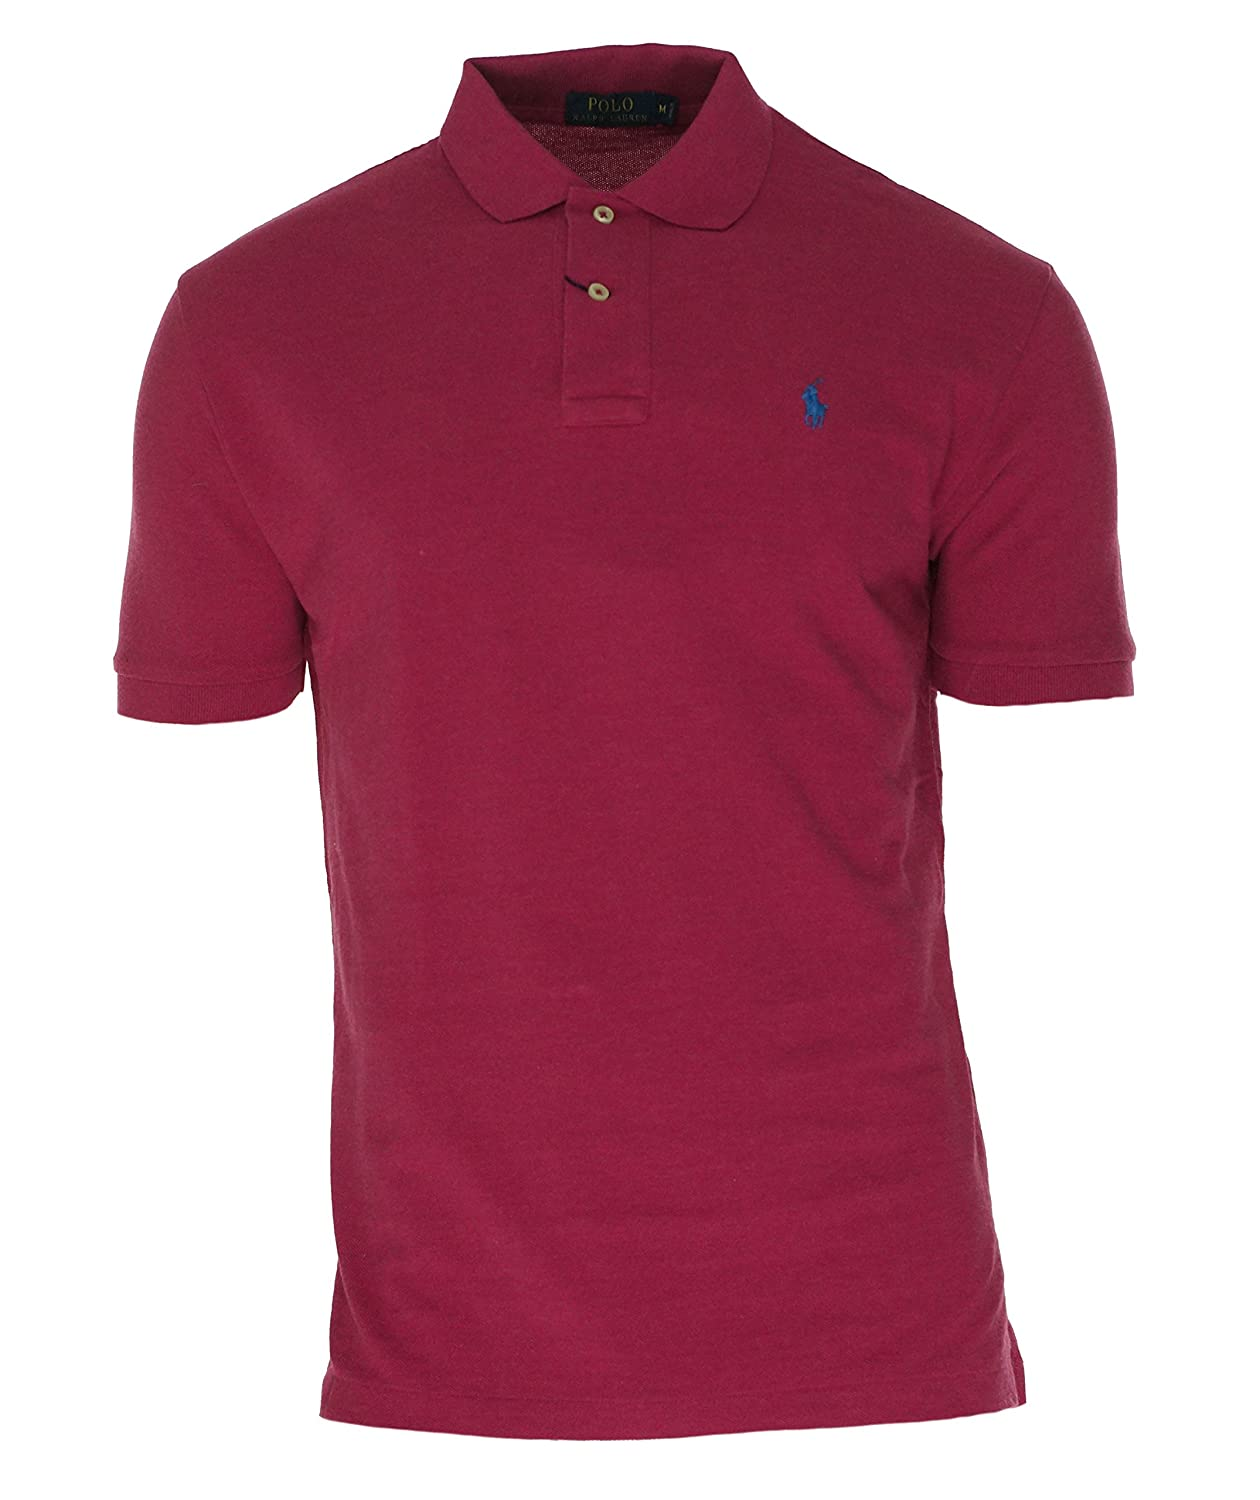 Polo Ralph Lauren Mens Custom Fit Short Sleeves Polo Shirt Large)